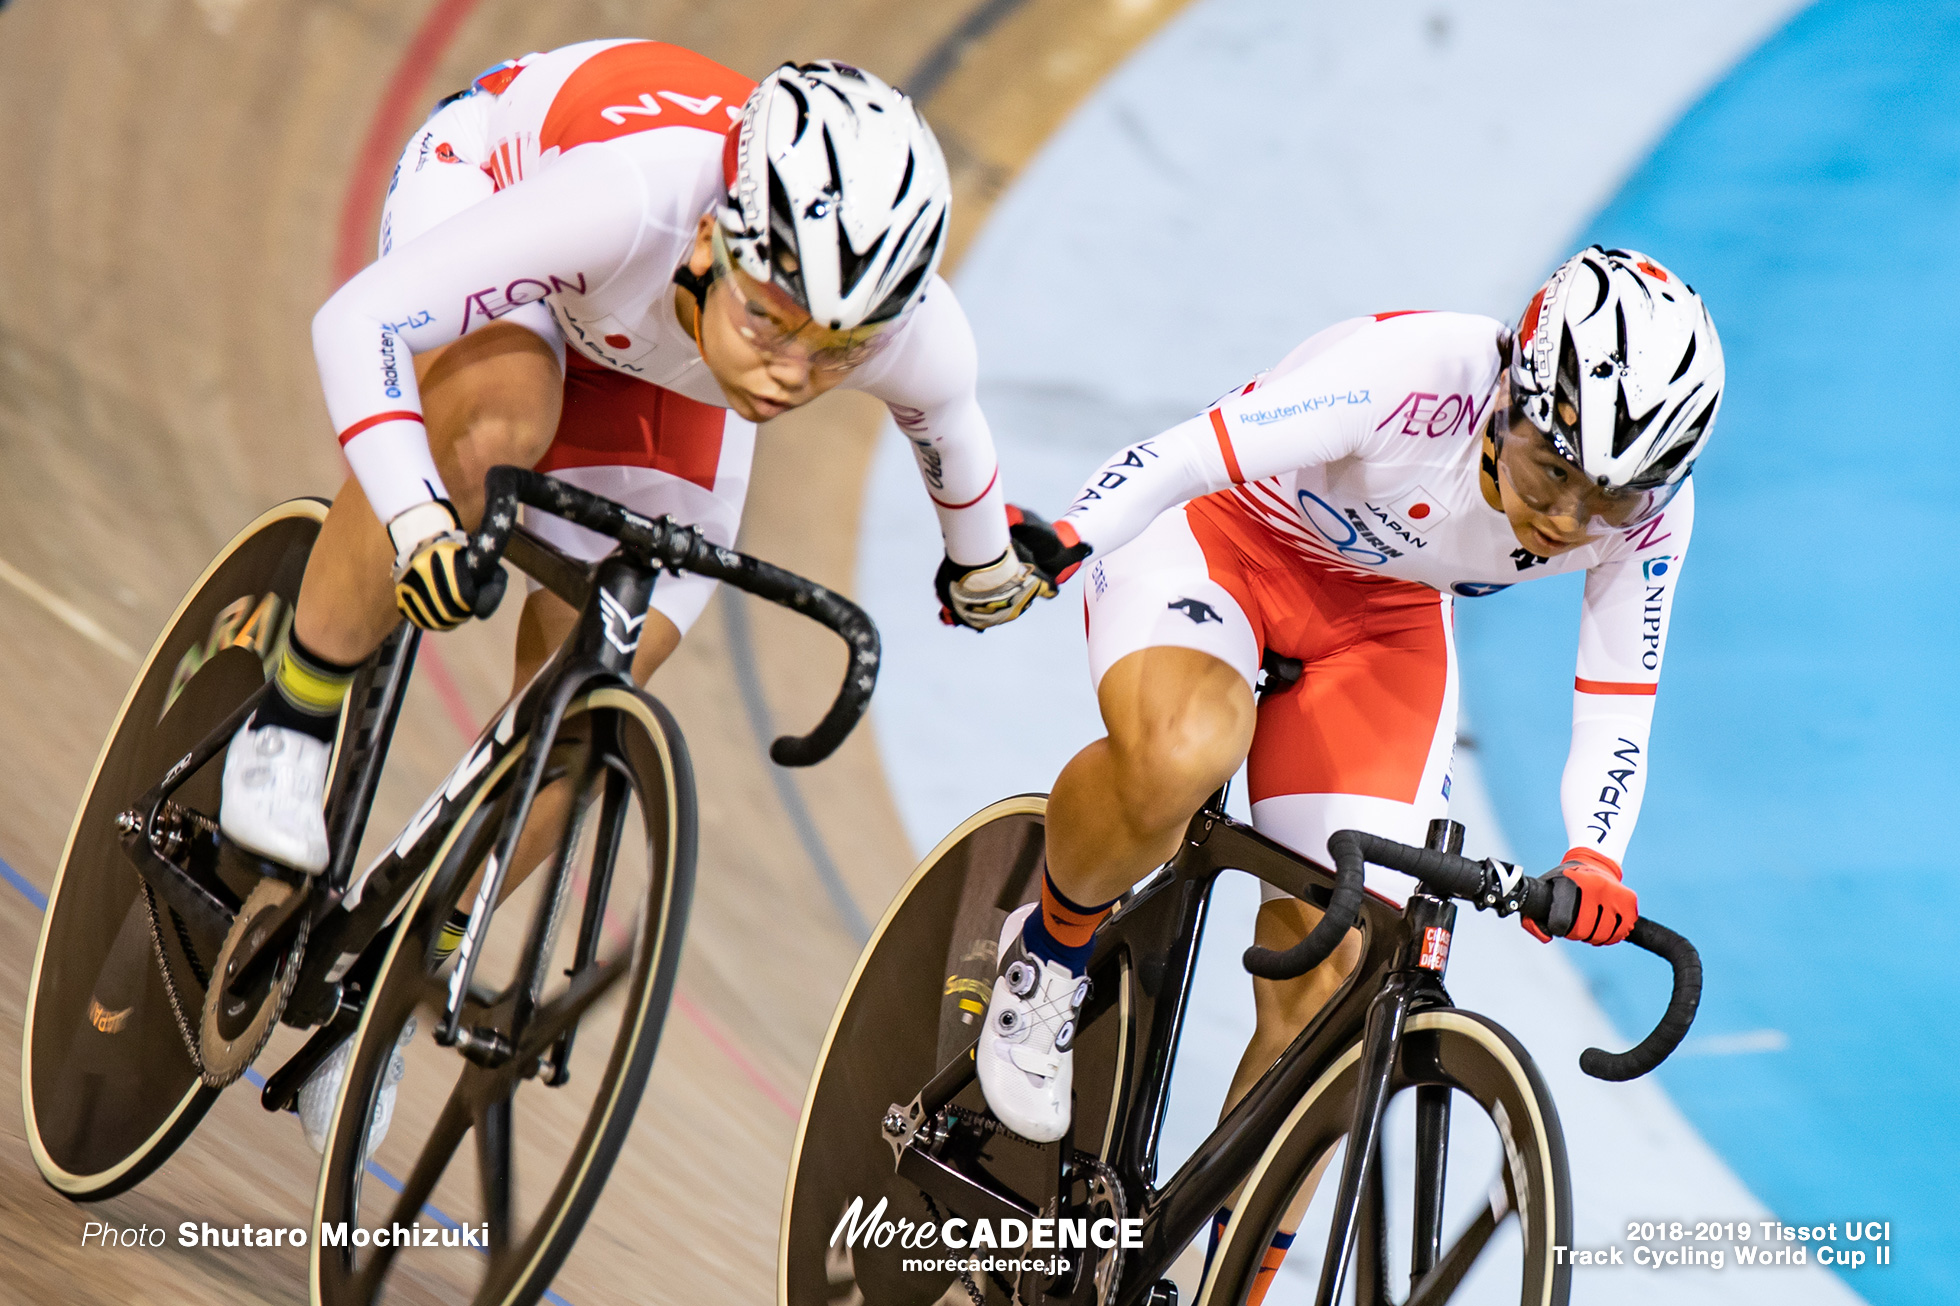 2018-2019 Tissot UCI Track Cycling World Cup II Women's Madison